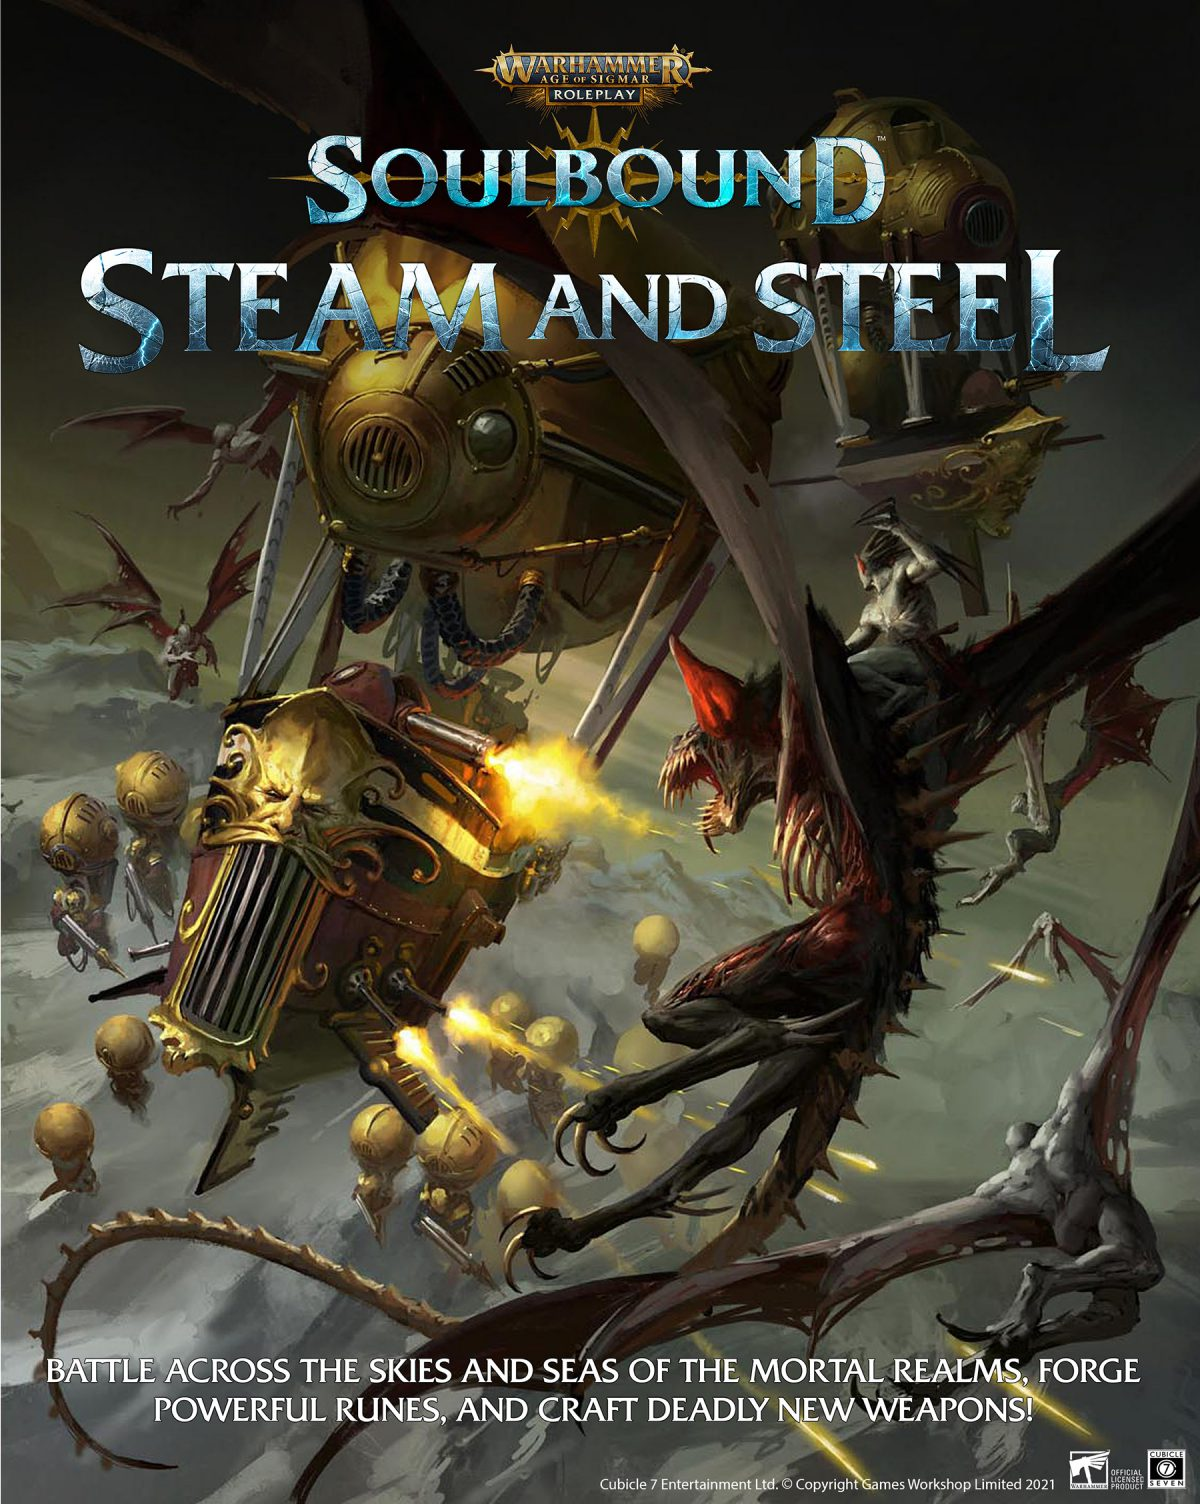 Age of Sigmar: Steam and Steel – Coming Soon